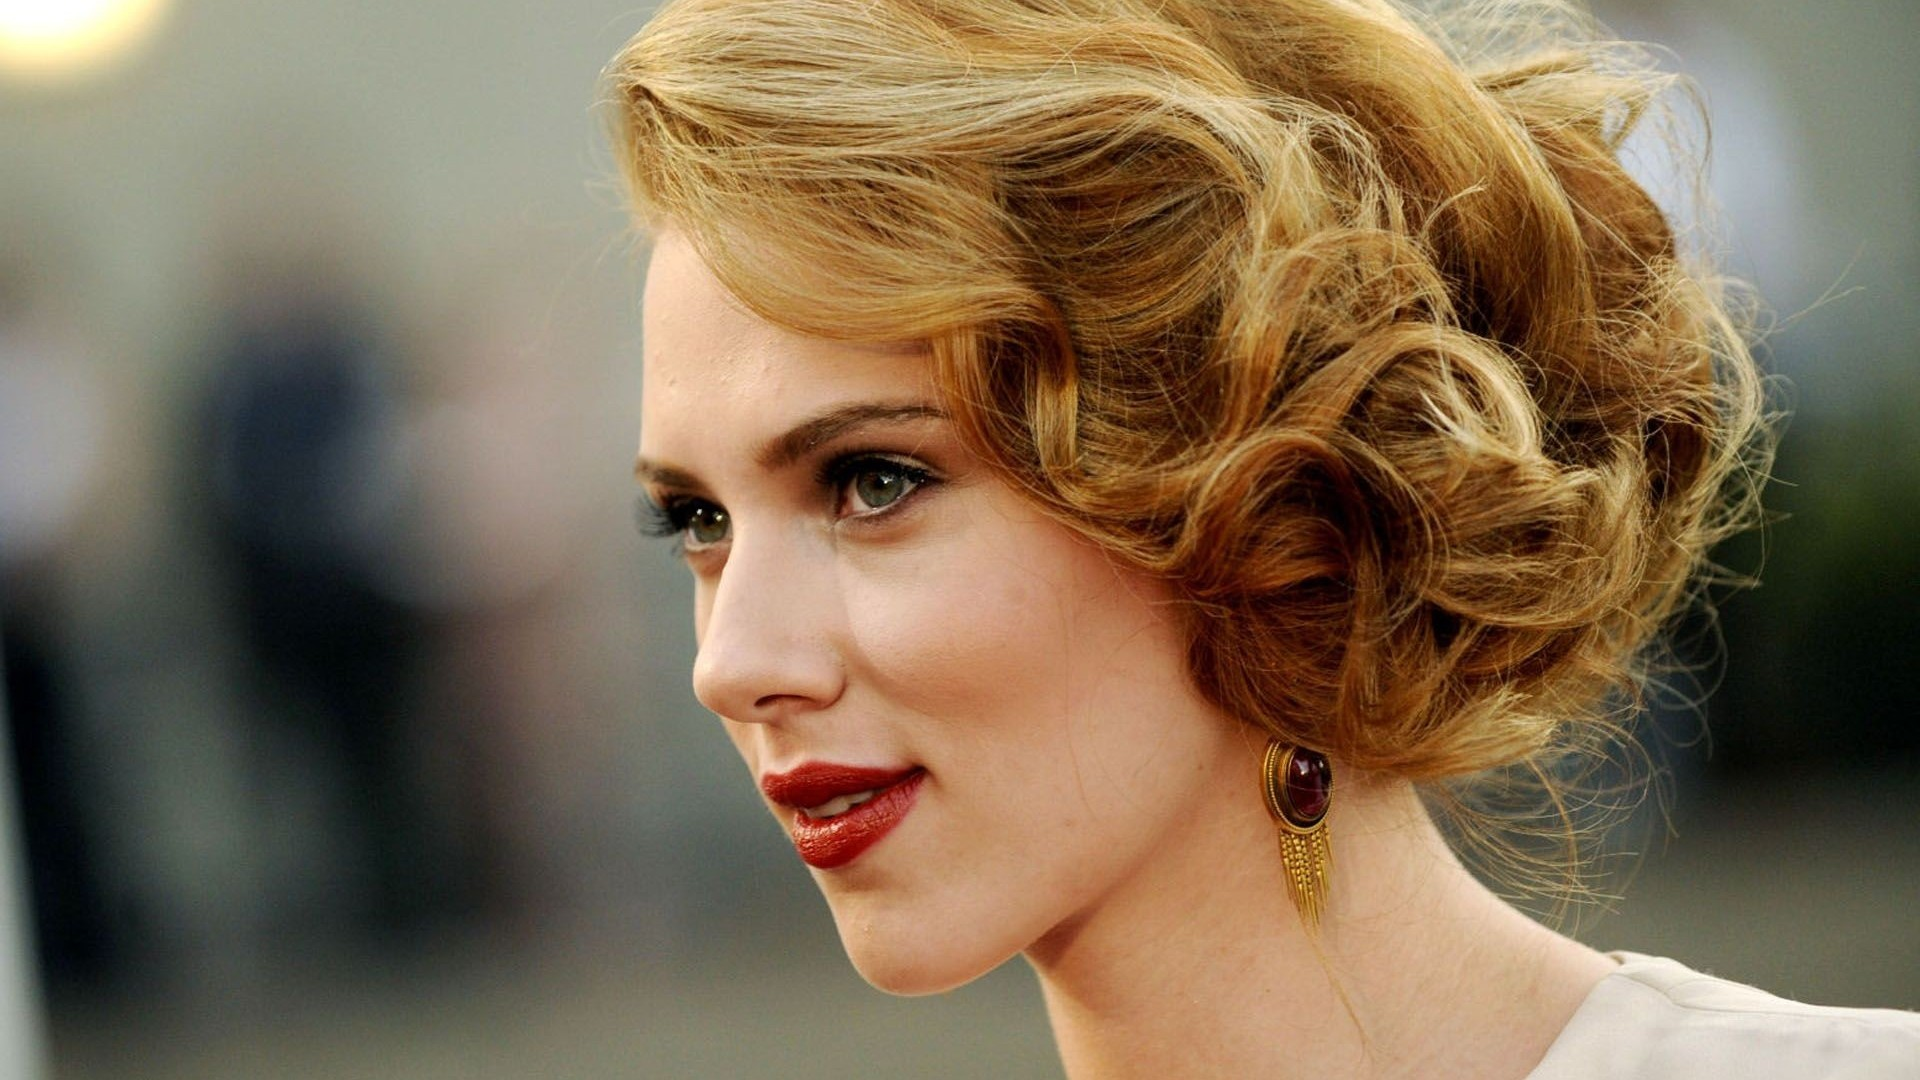 Beautiful Scarlett Johansson Cute Image Download